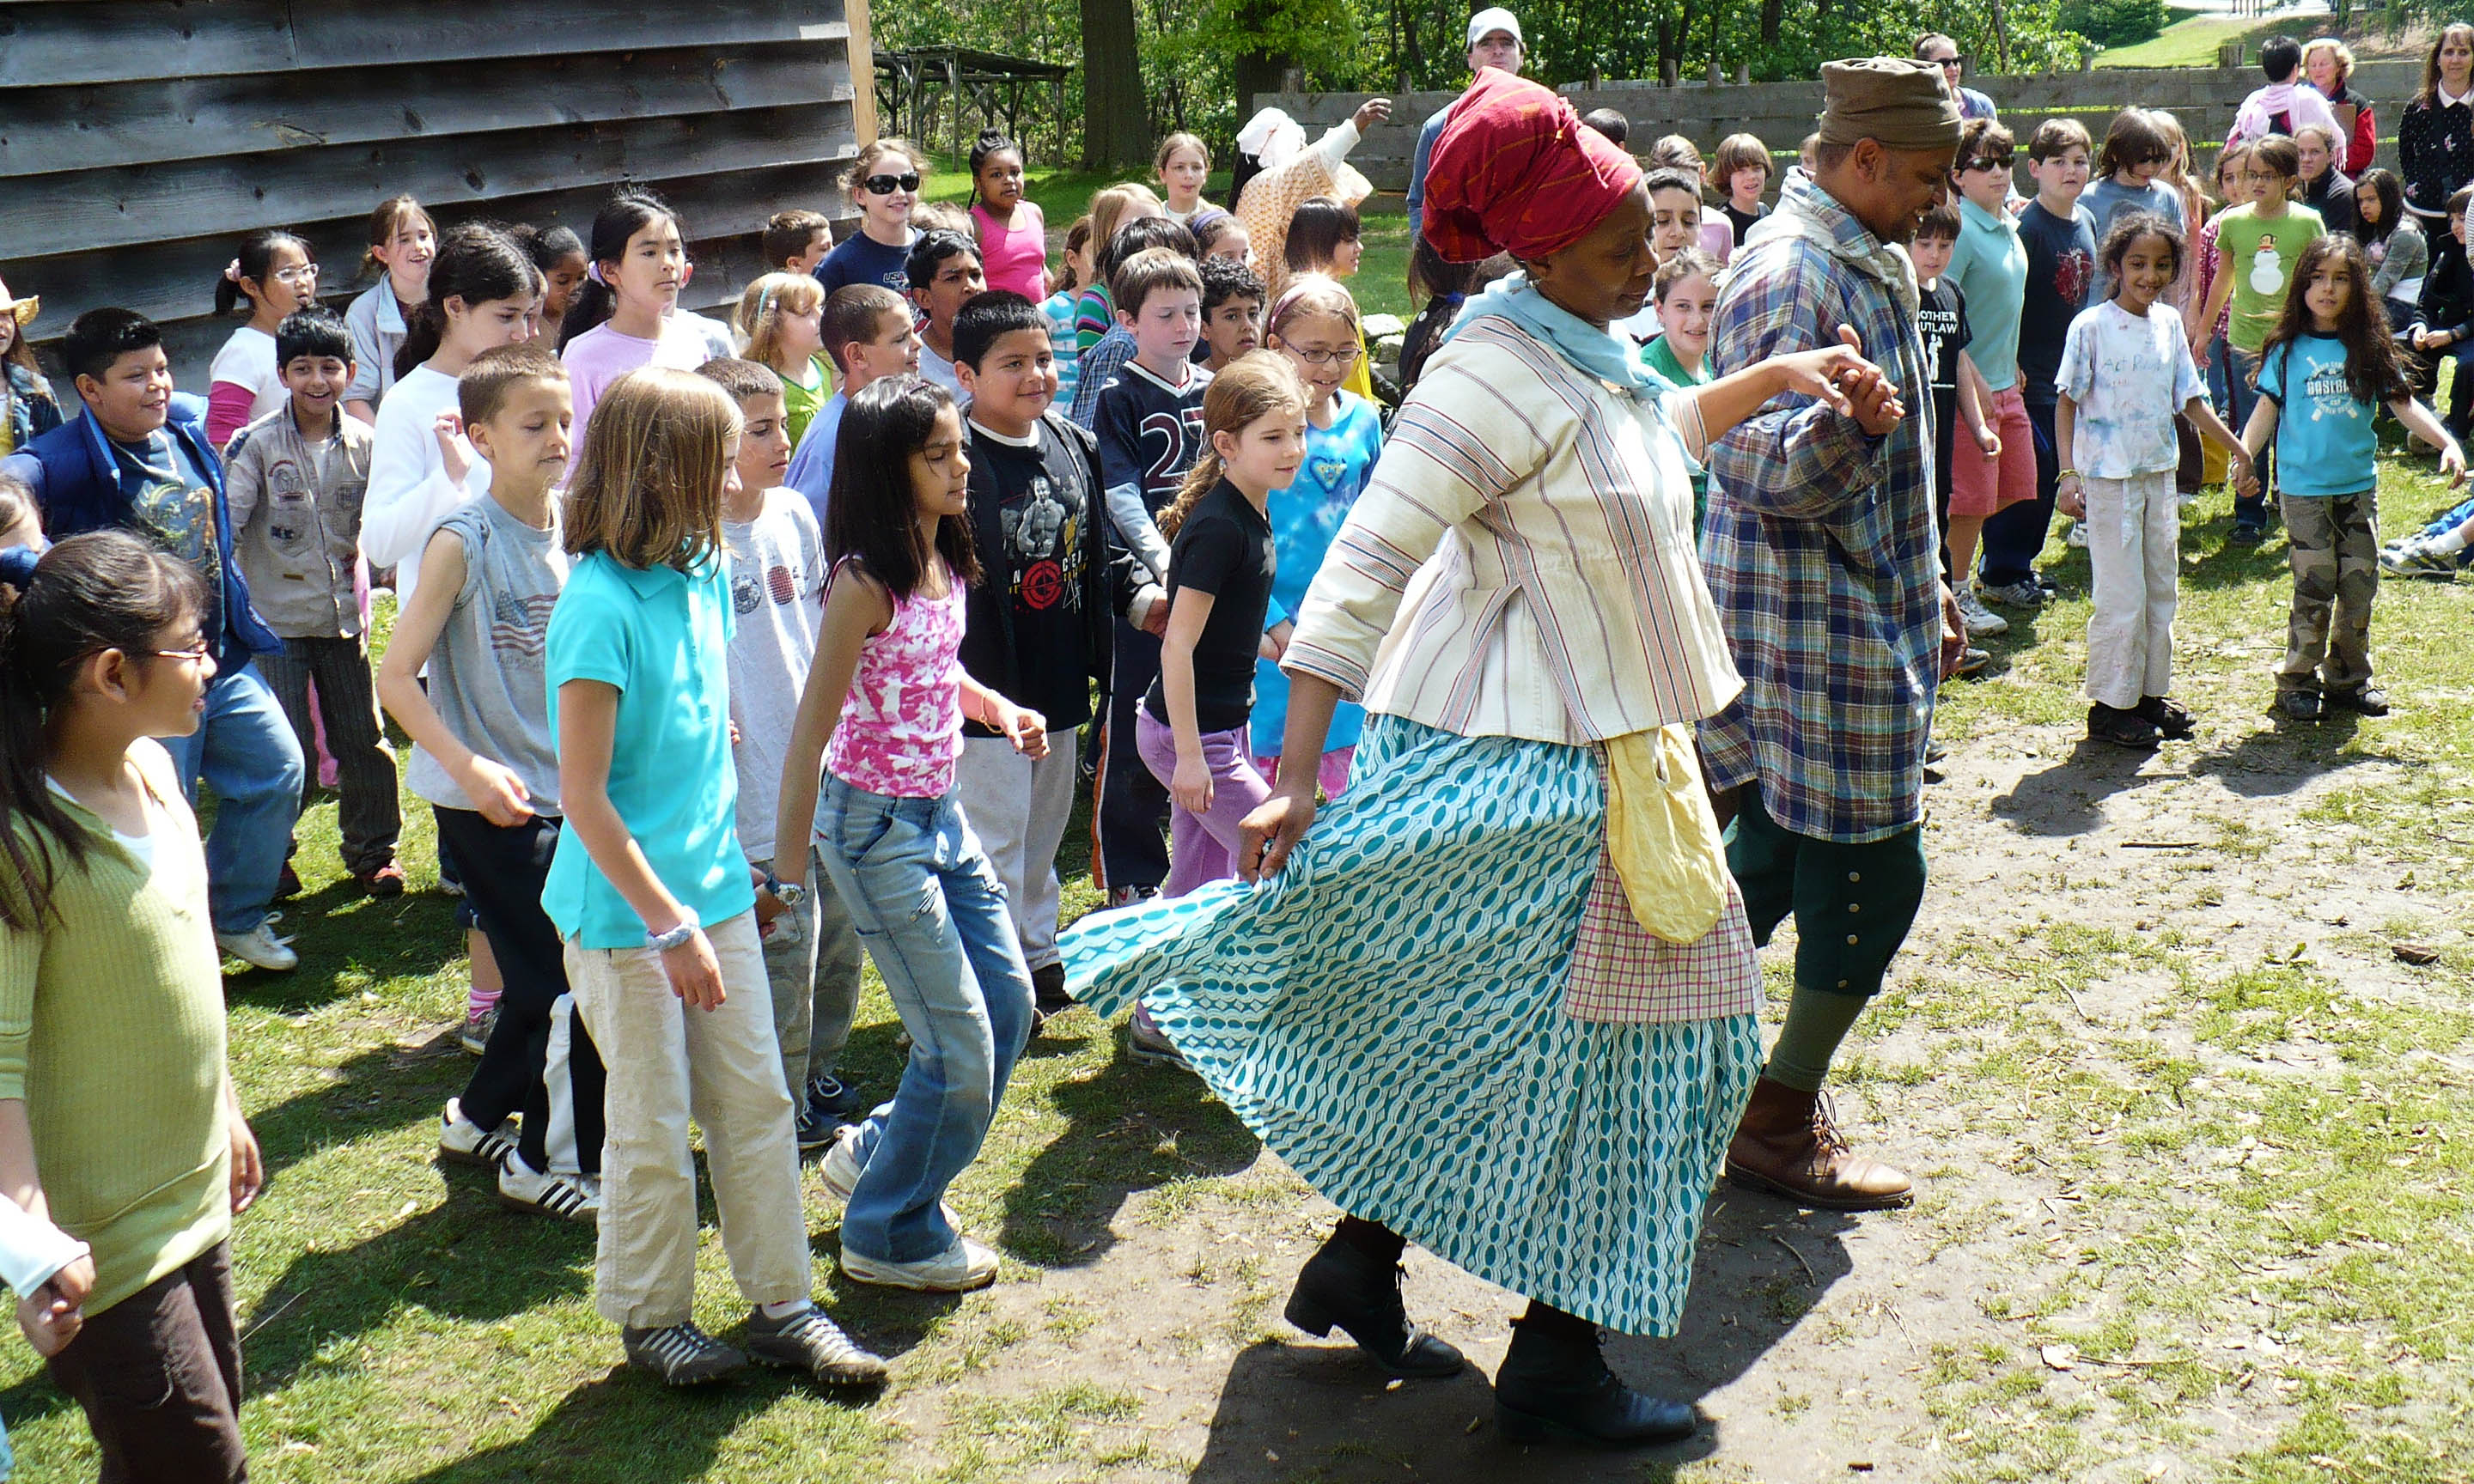 Students participate in music and dance at Philipsburg Manor